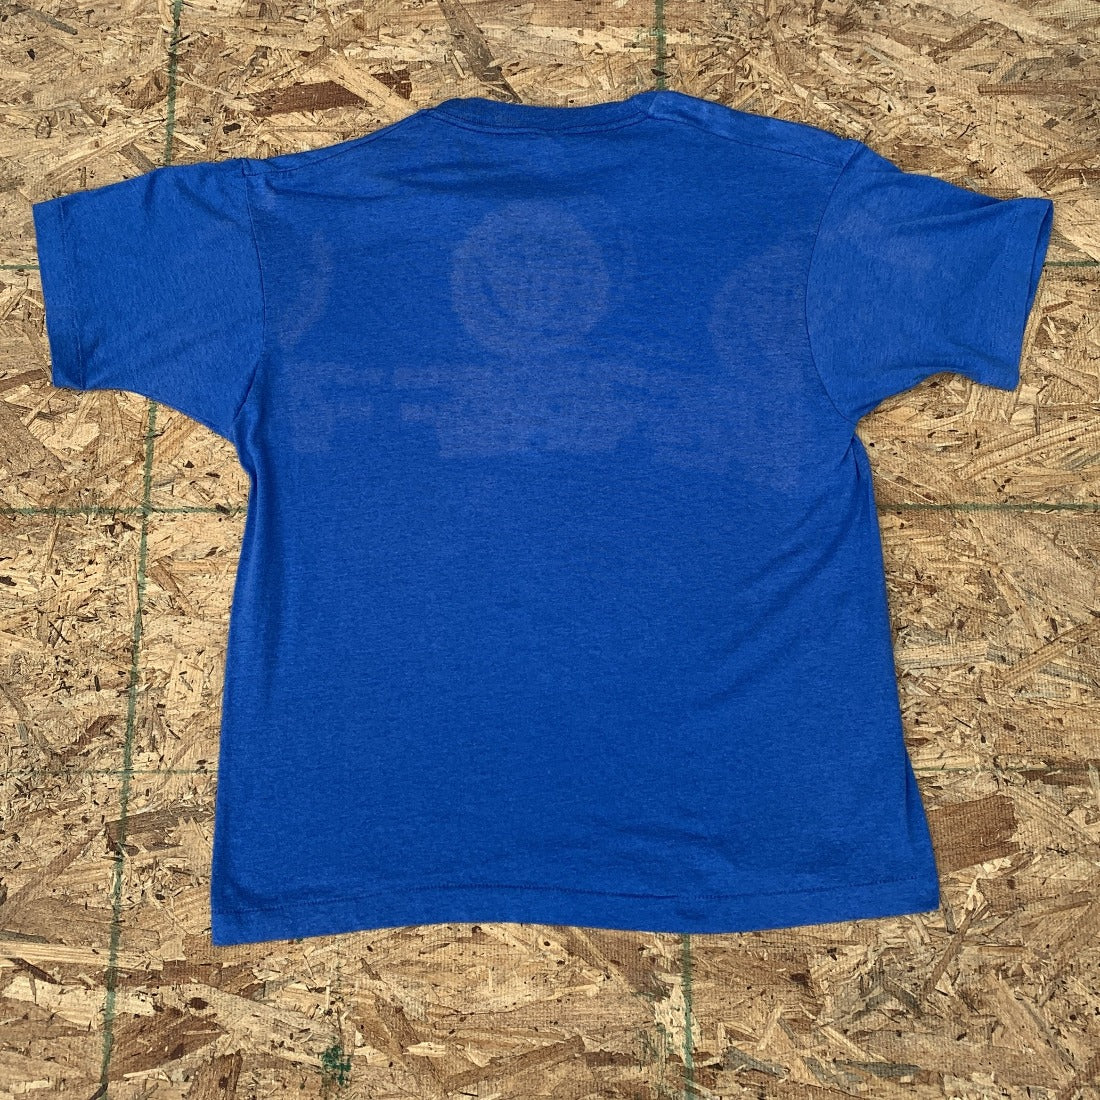 Amateur Soccer Association Blue 50/50 Tshirt | M L Vintage